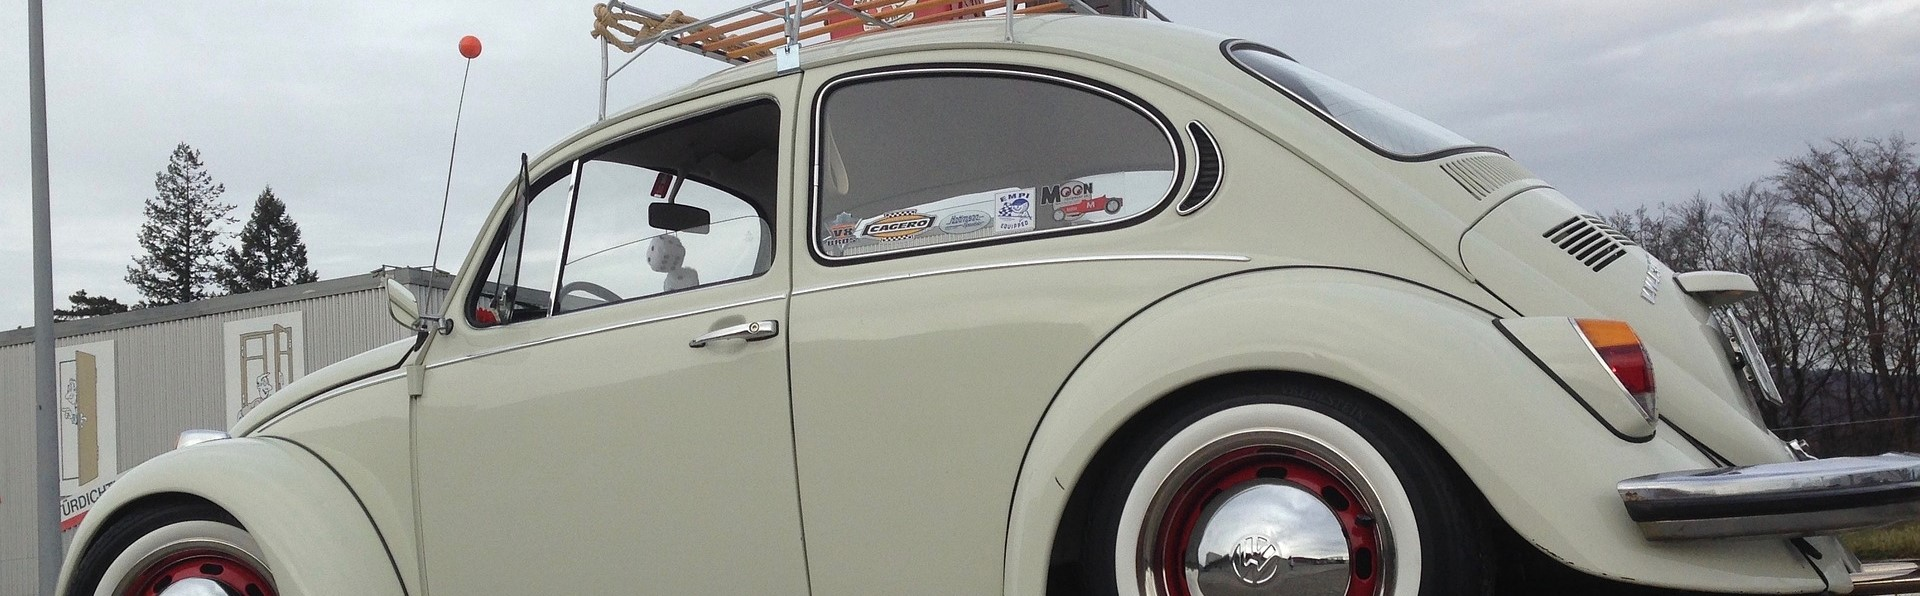 Oldtimer Beetle in Utica, New York   Breast Cancer Car Donations